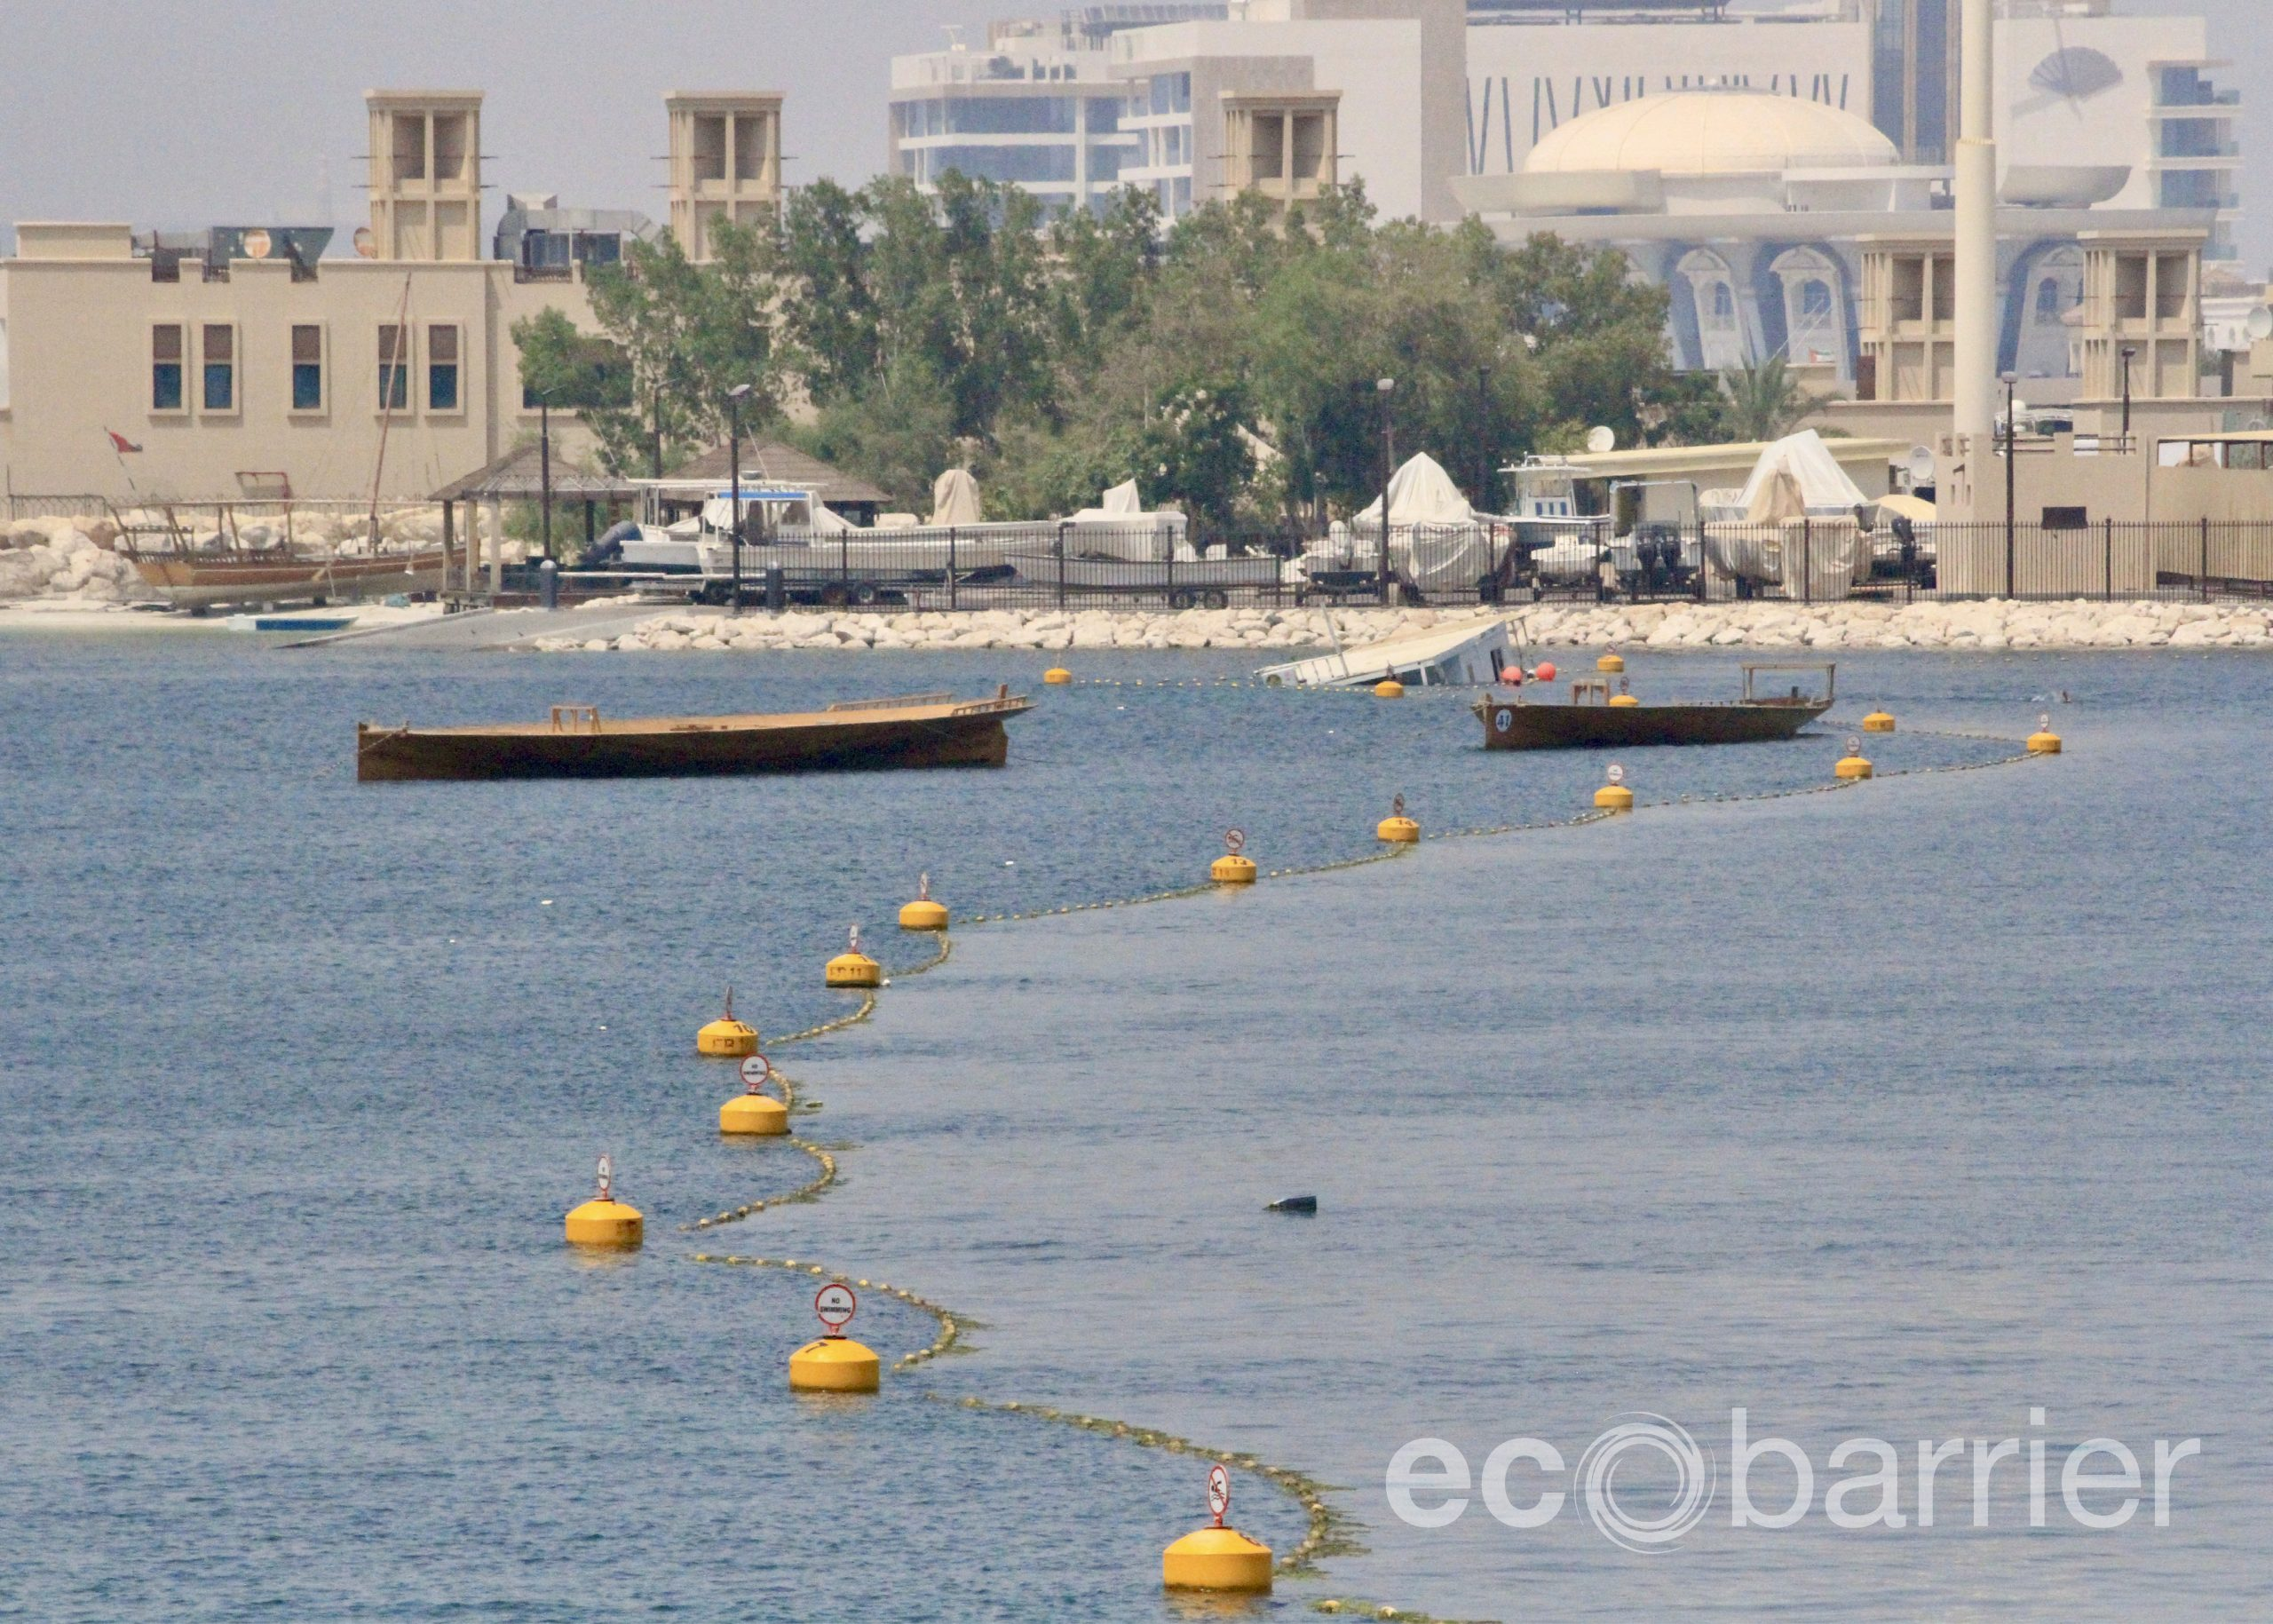 Ecobarrier Floating Buoys EFB-650